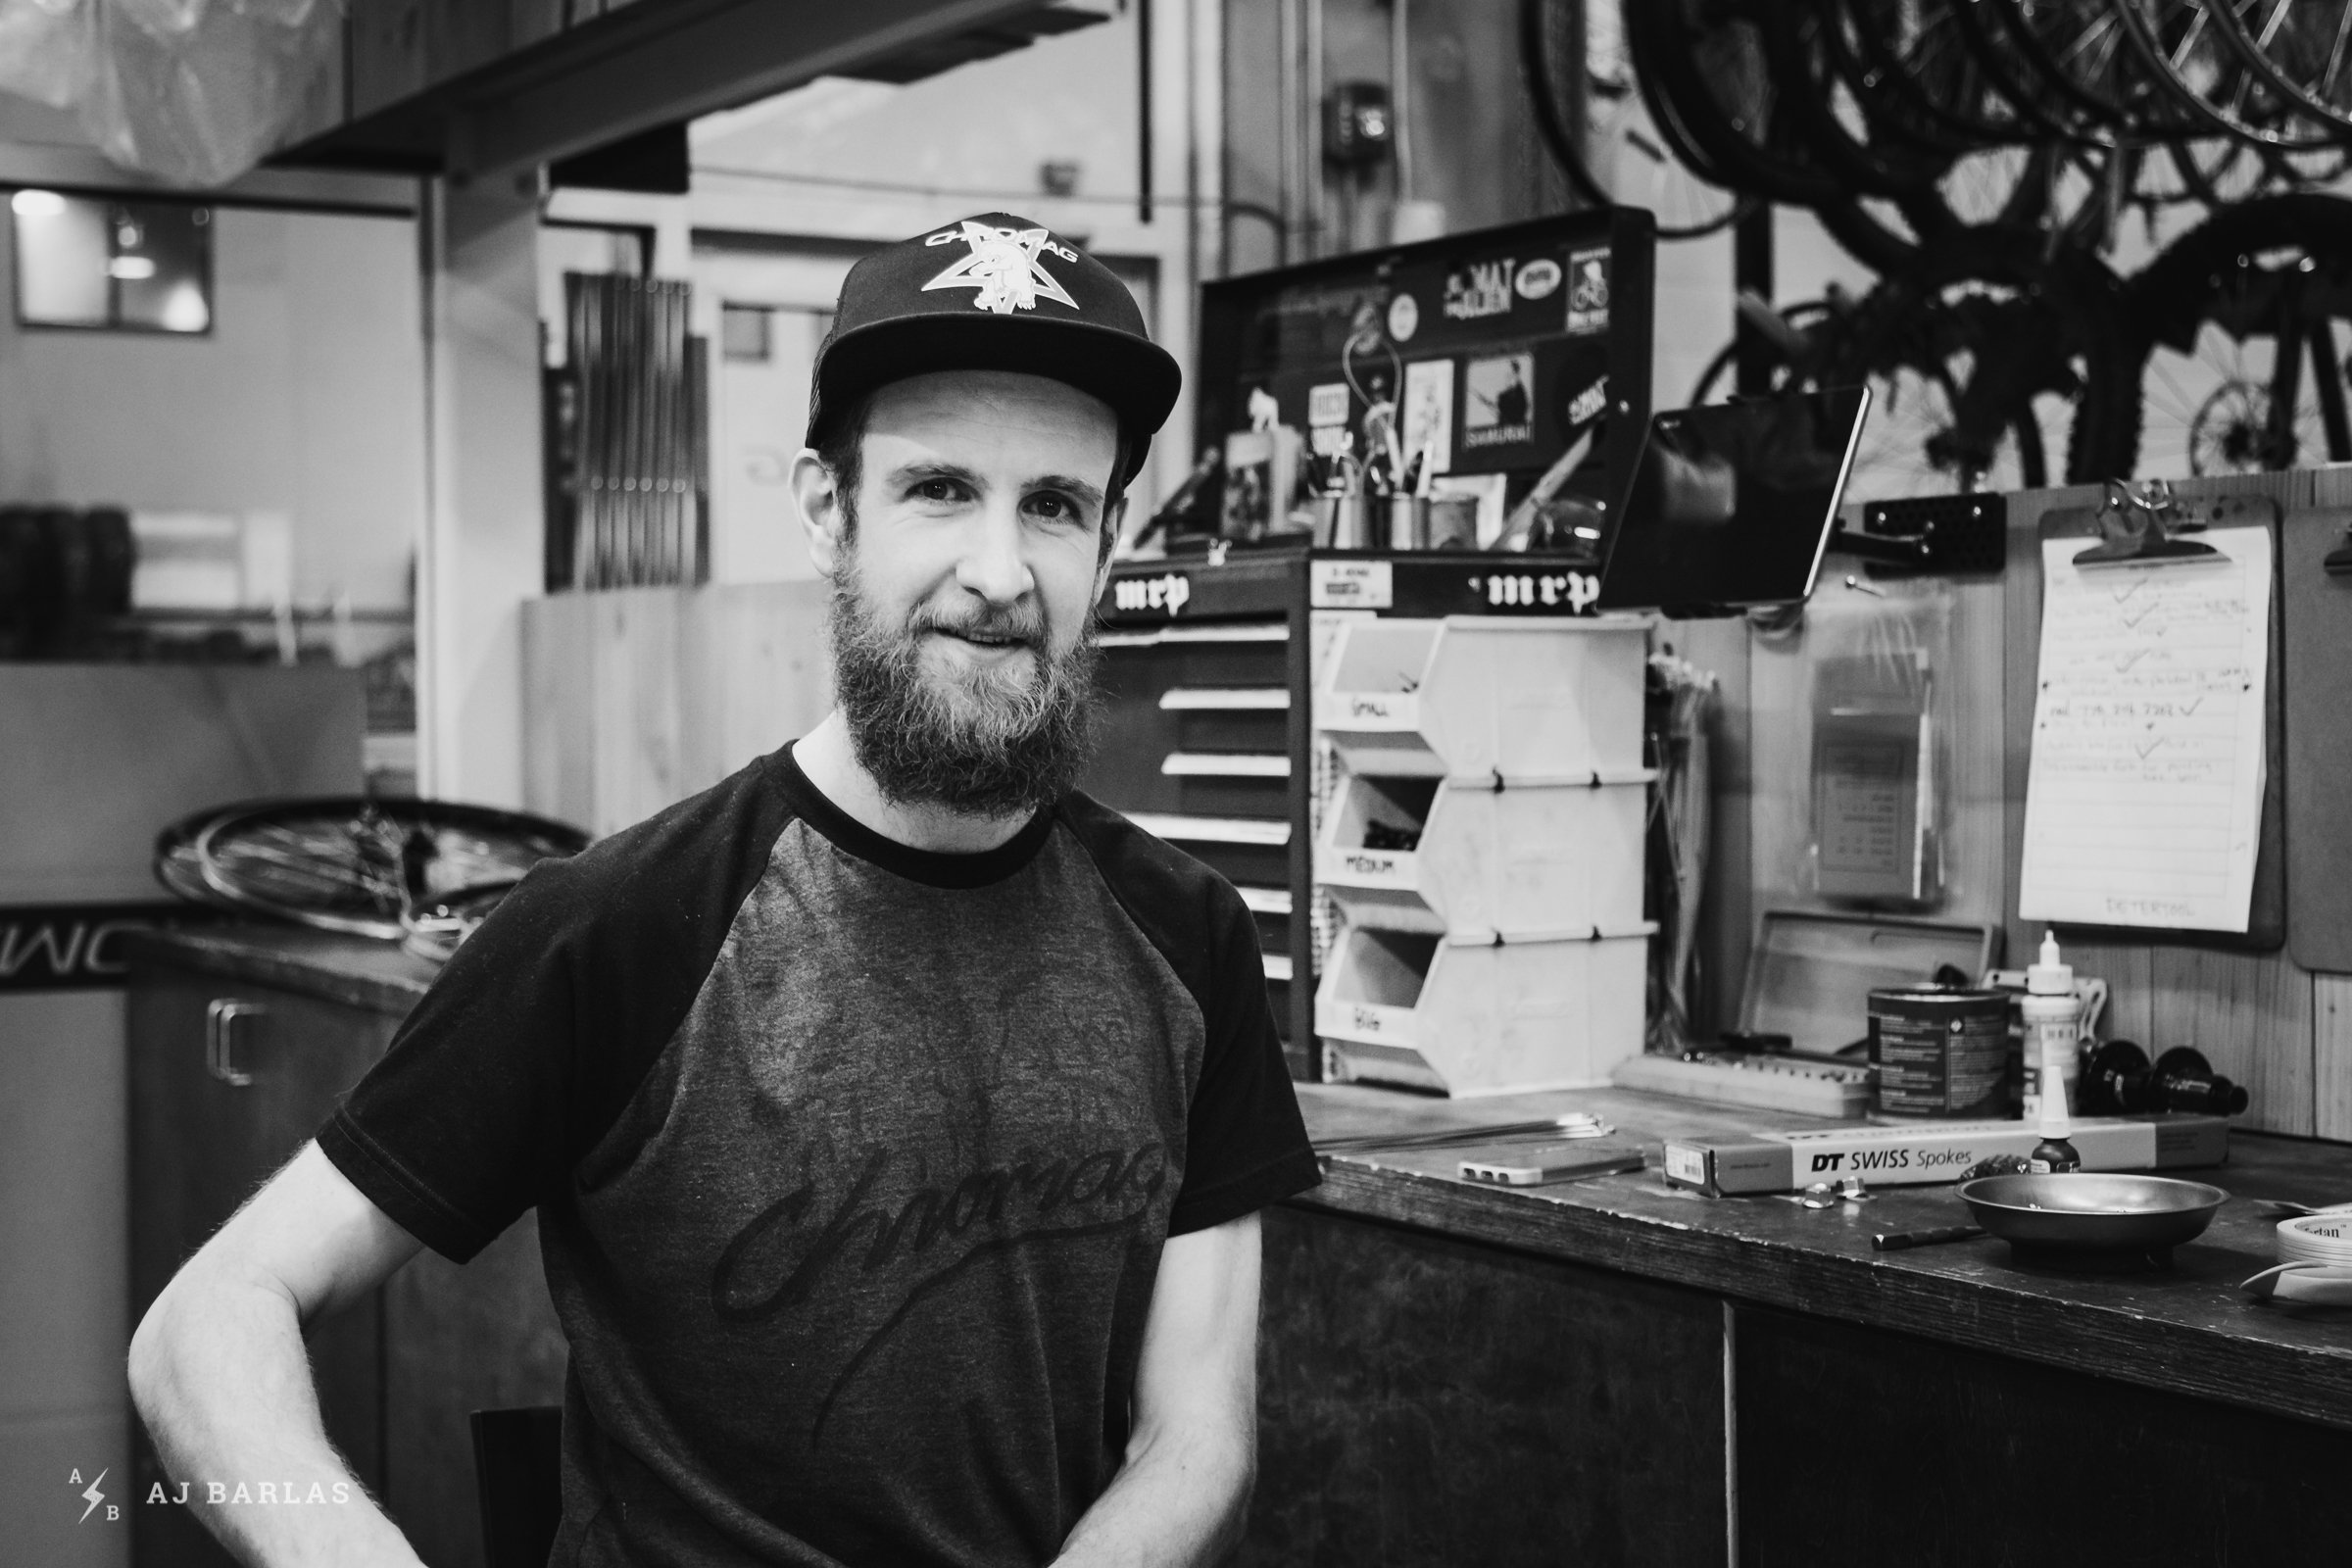 Chromag Staff - Pete Fowler builds bikes and wheels